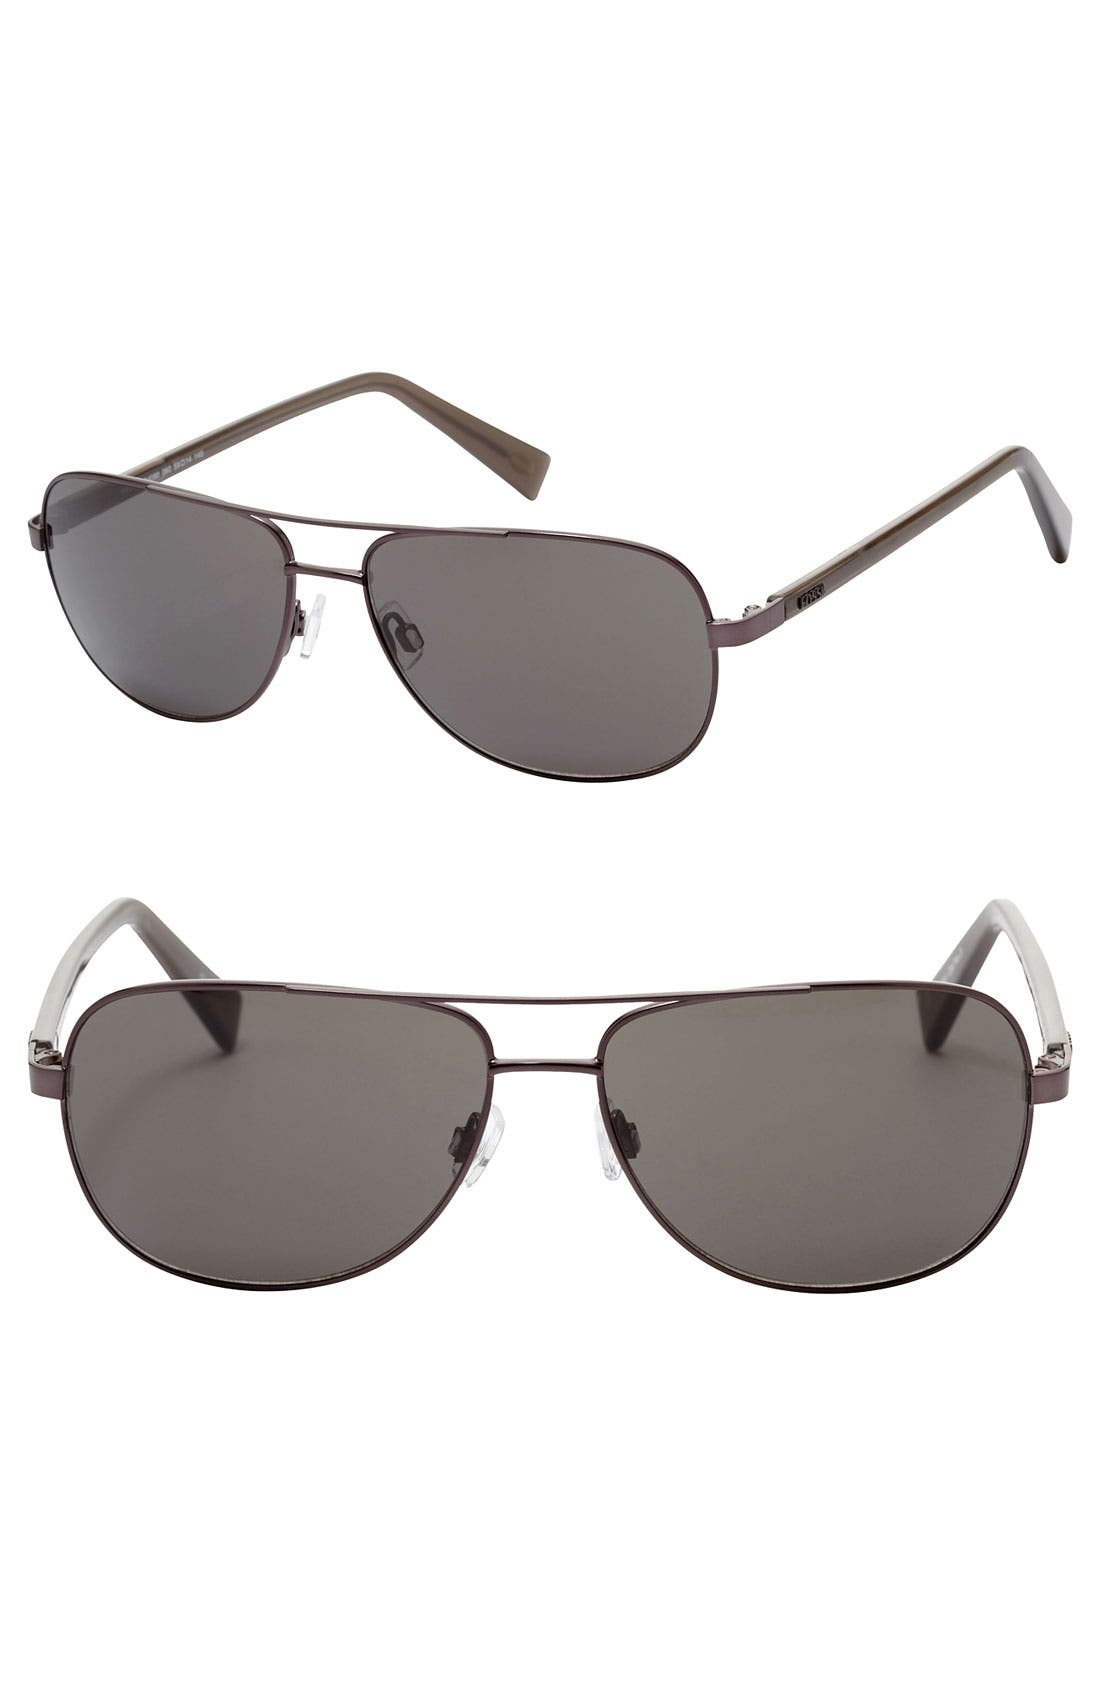 Main Image - Fossil 'Wade' 59mm Aviator Sunglasses